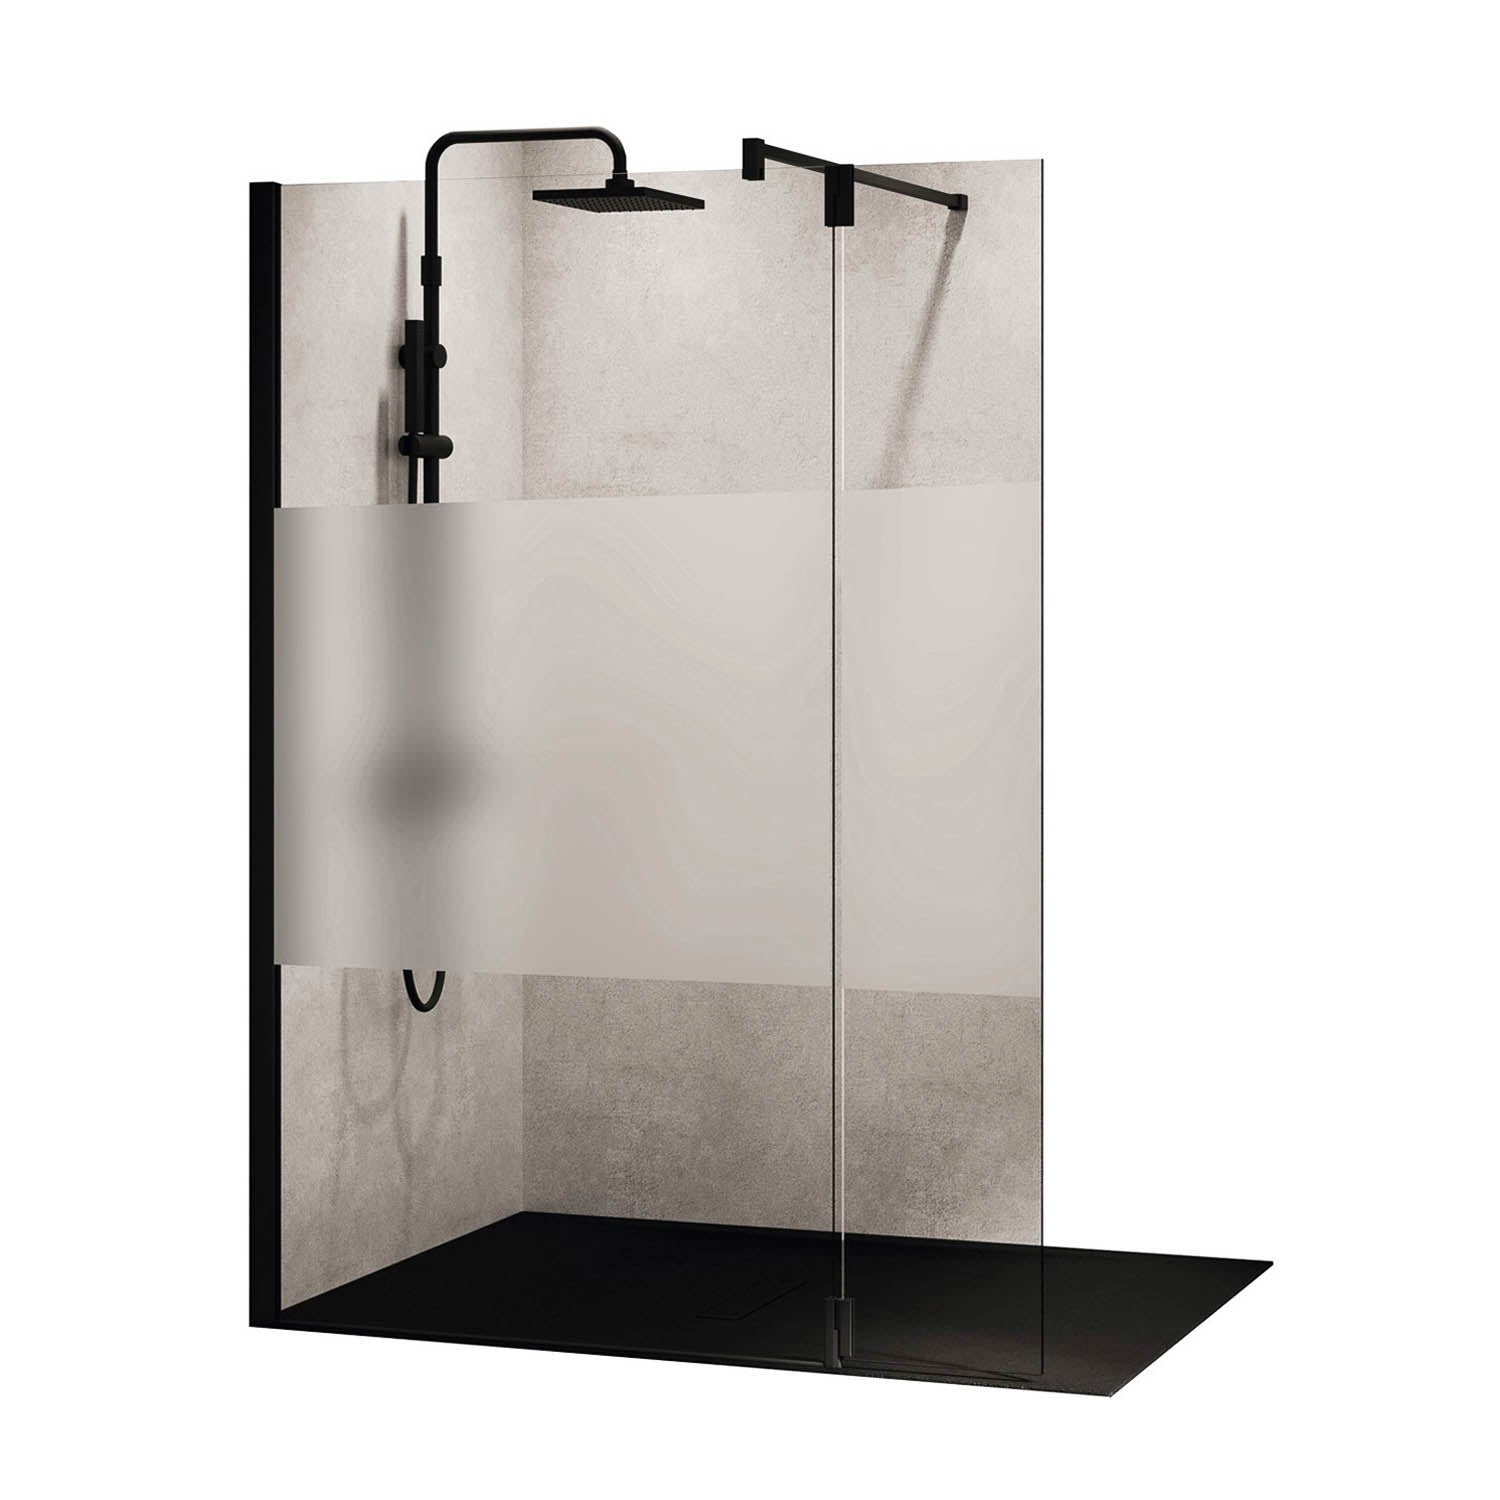 770-800mm Ergo Wet Room Screen Satin Band Glass with a matt black finish on a white background